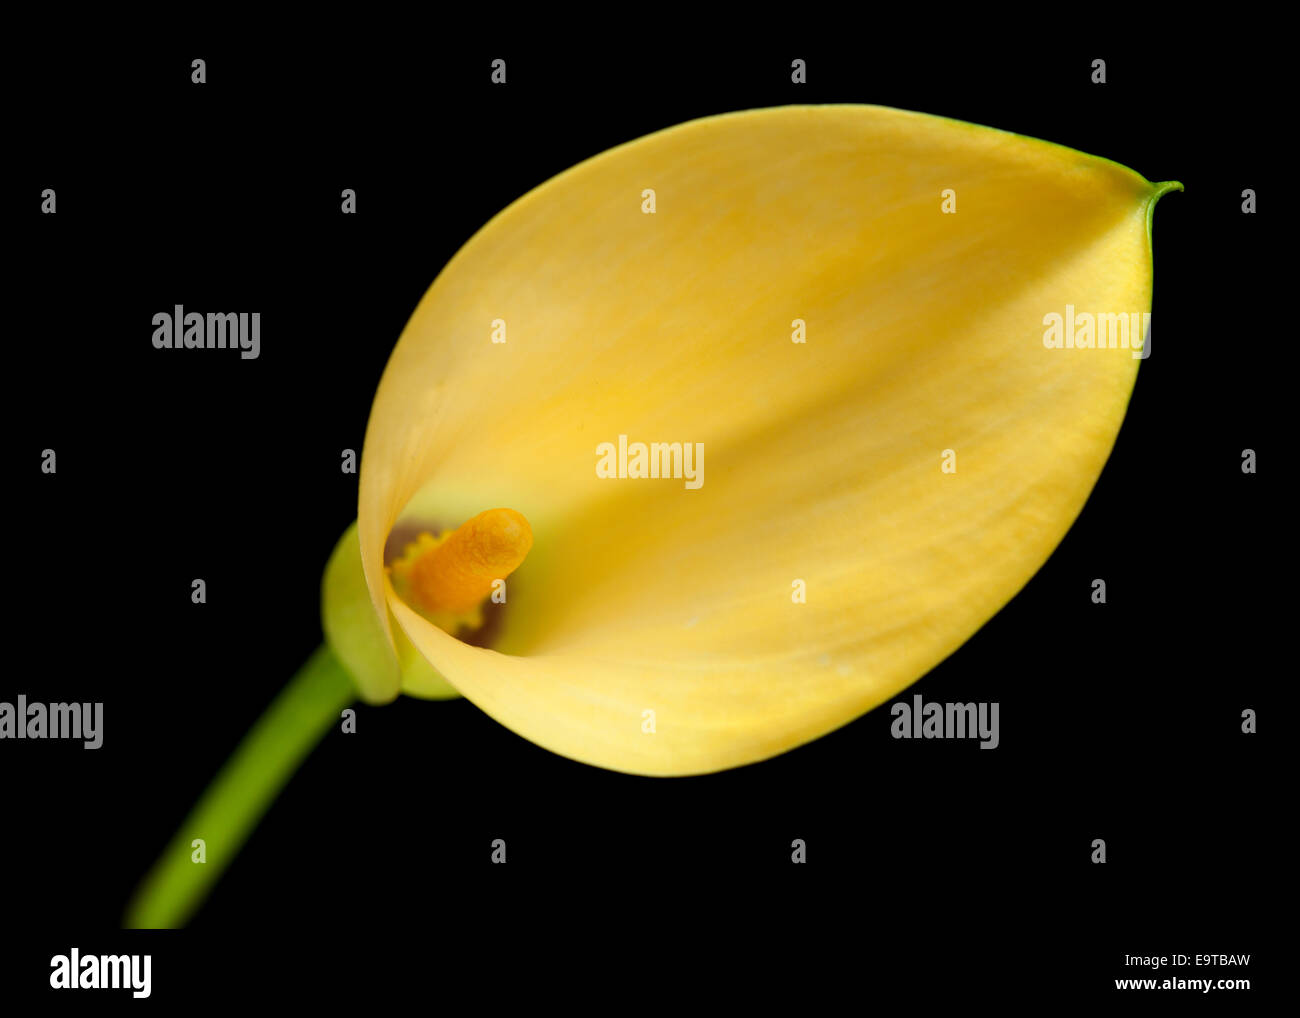 Yellow calla lily flower islolated on black background stock photo stock photo yellow calla lily flower islolated on black background dhlflorist Images